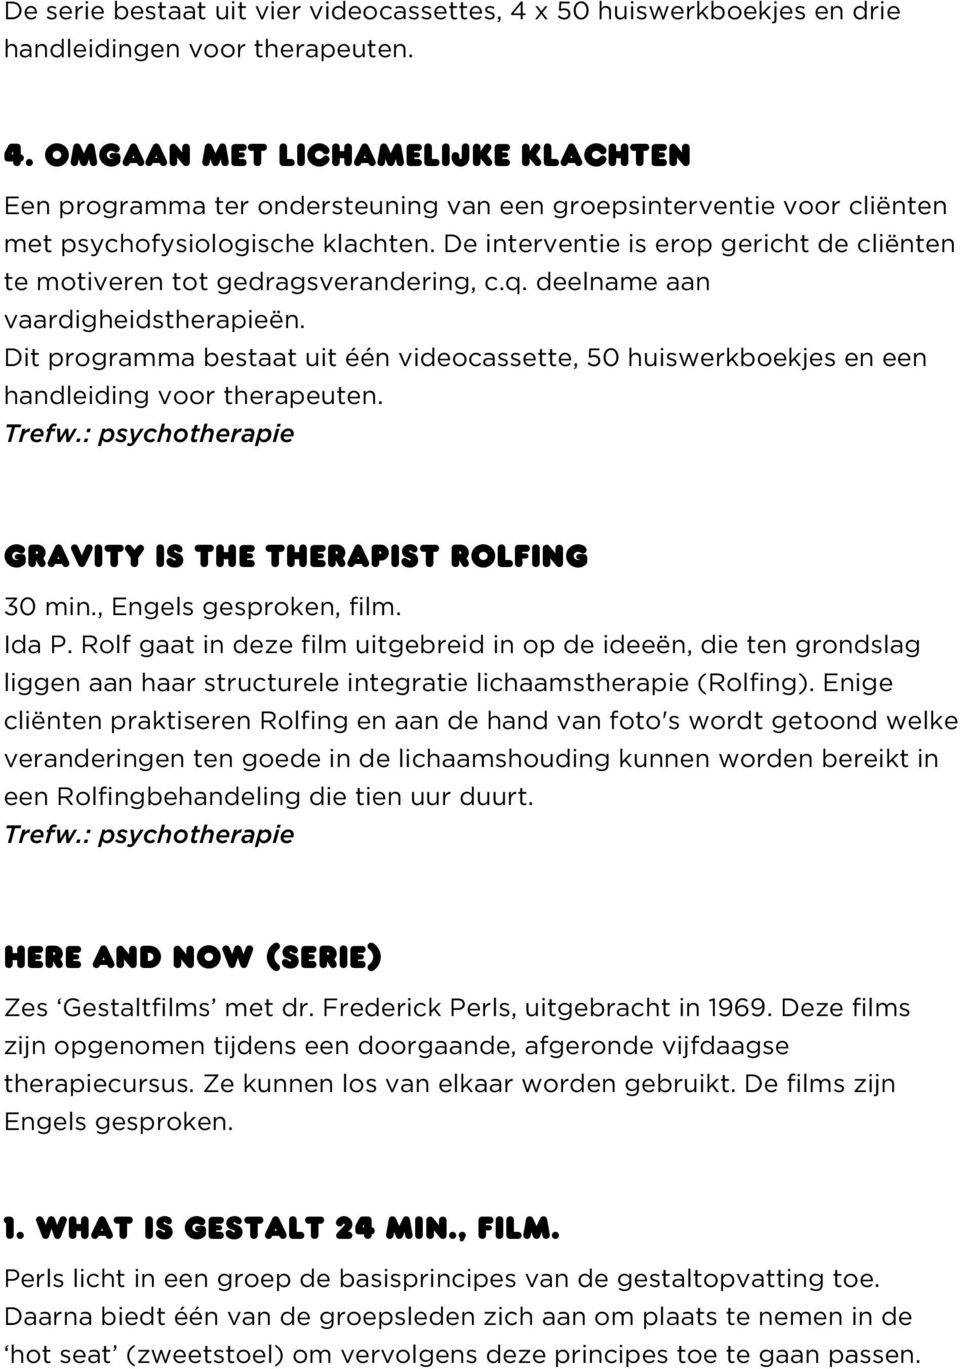 Dit programma bestaat uit één videocassette, 50 huiswerkboekjes en een handleiding voor therapeuten. Trefw.: psychotherapie GRAVITY IS THE THERAPIST ROLFING 30 min., Engels gesproken, film. Ida P.